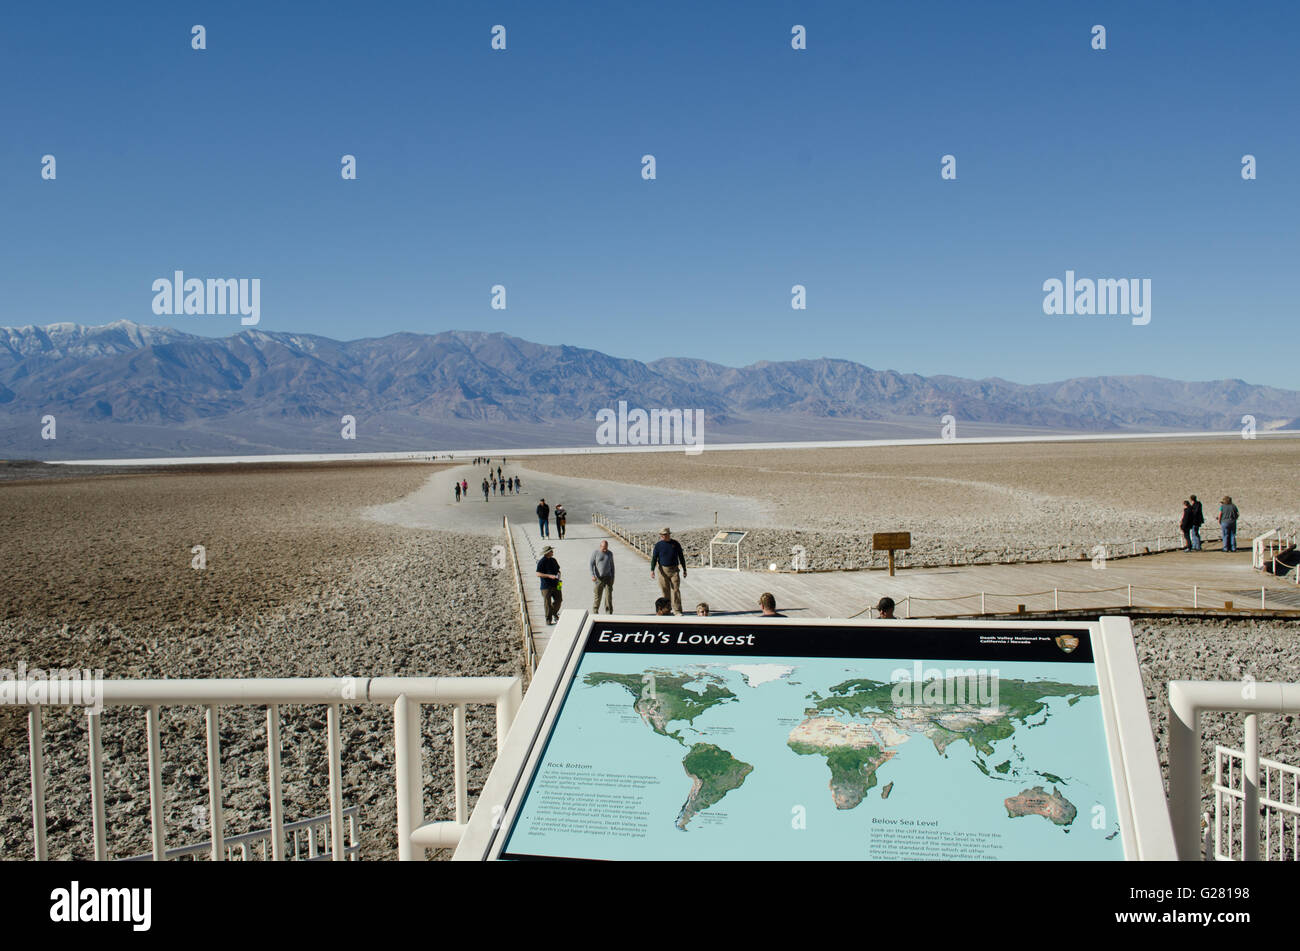 Visitors at Death Valley National Park at Badwater, lowest point in the US - Stock Image